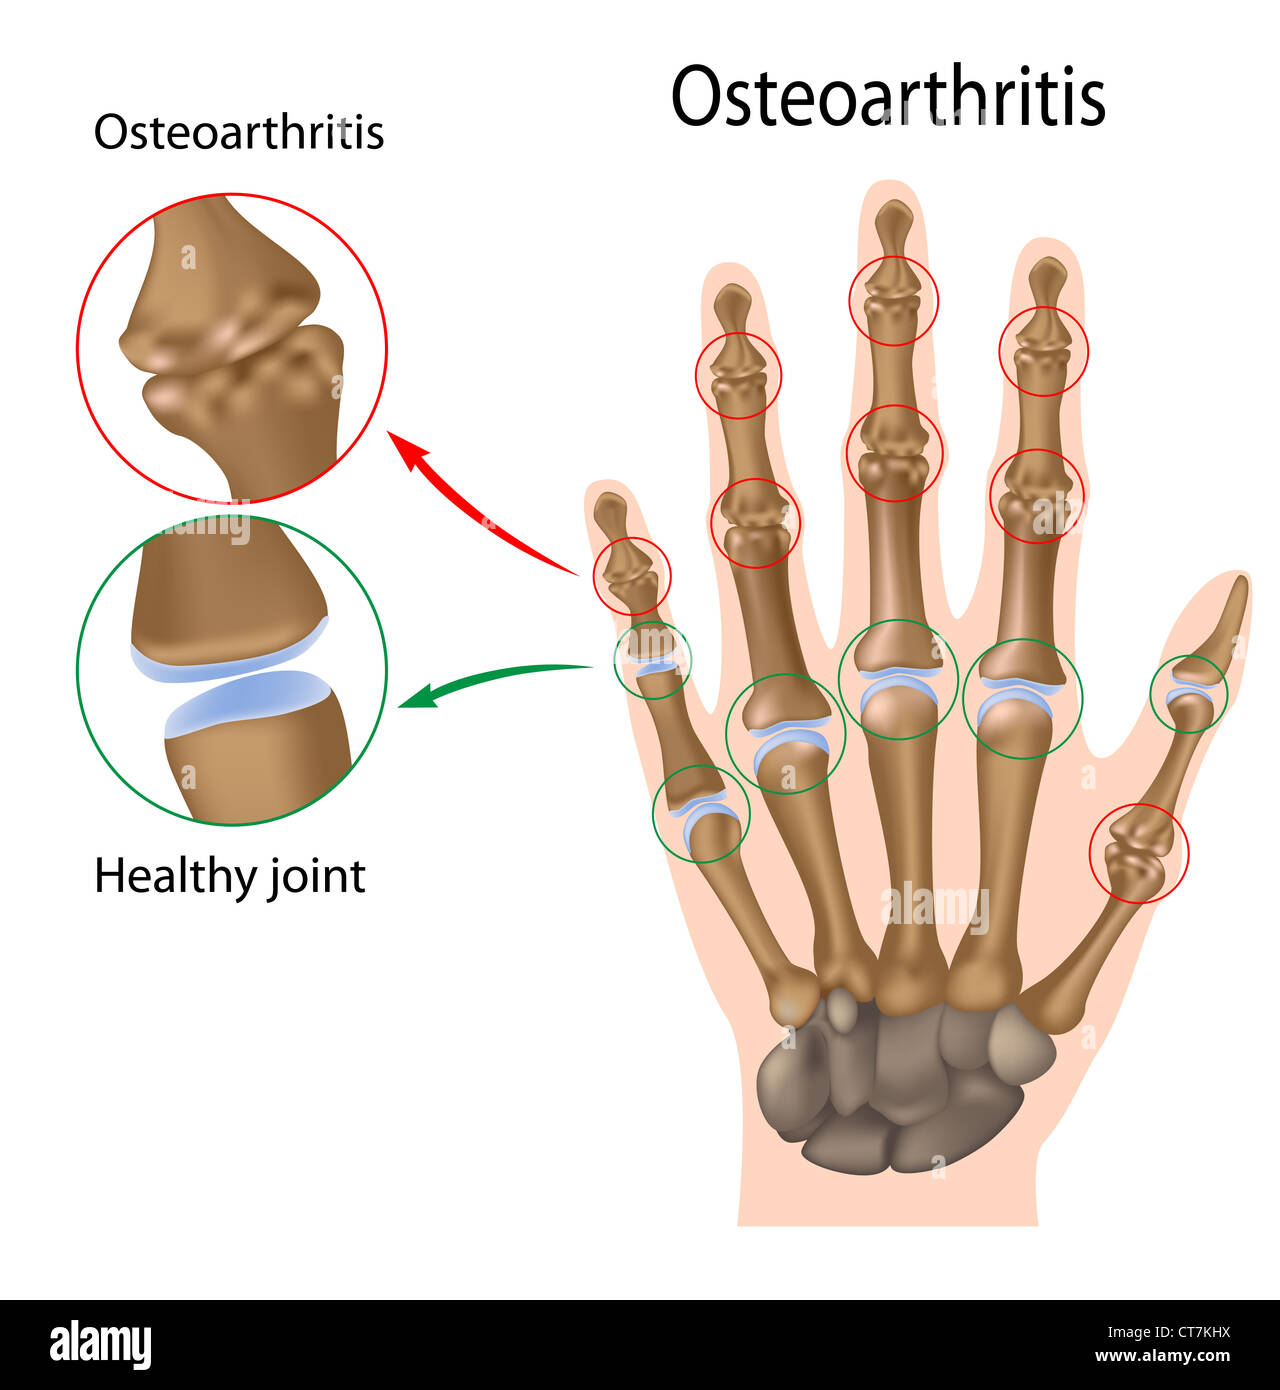 Osteoarthritis of the hand - Stock Image